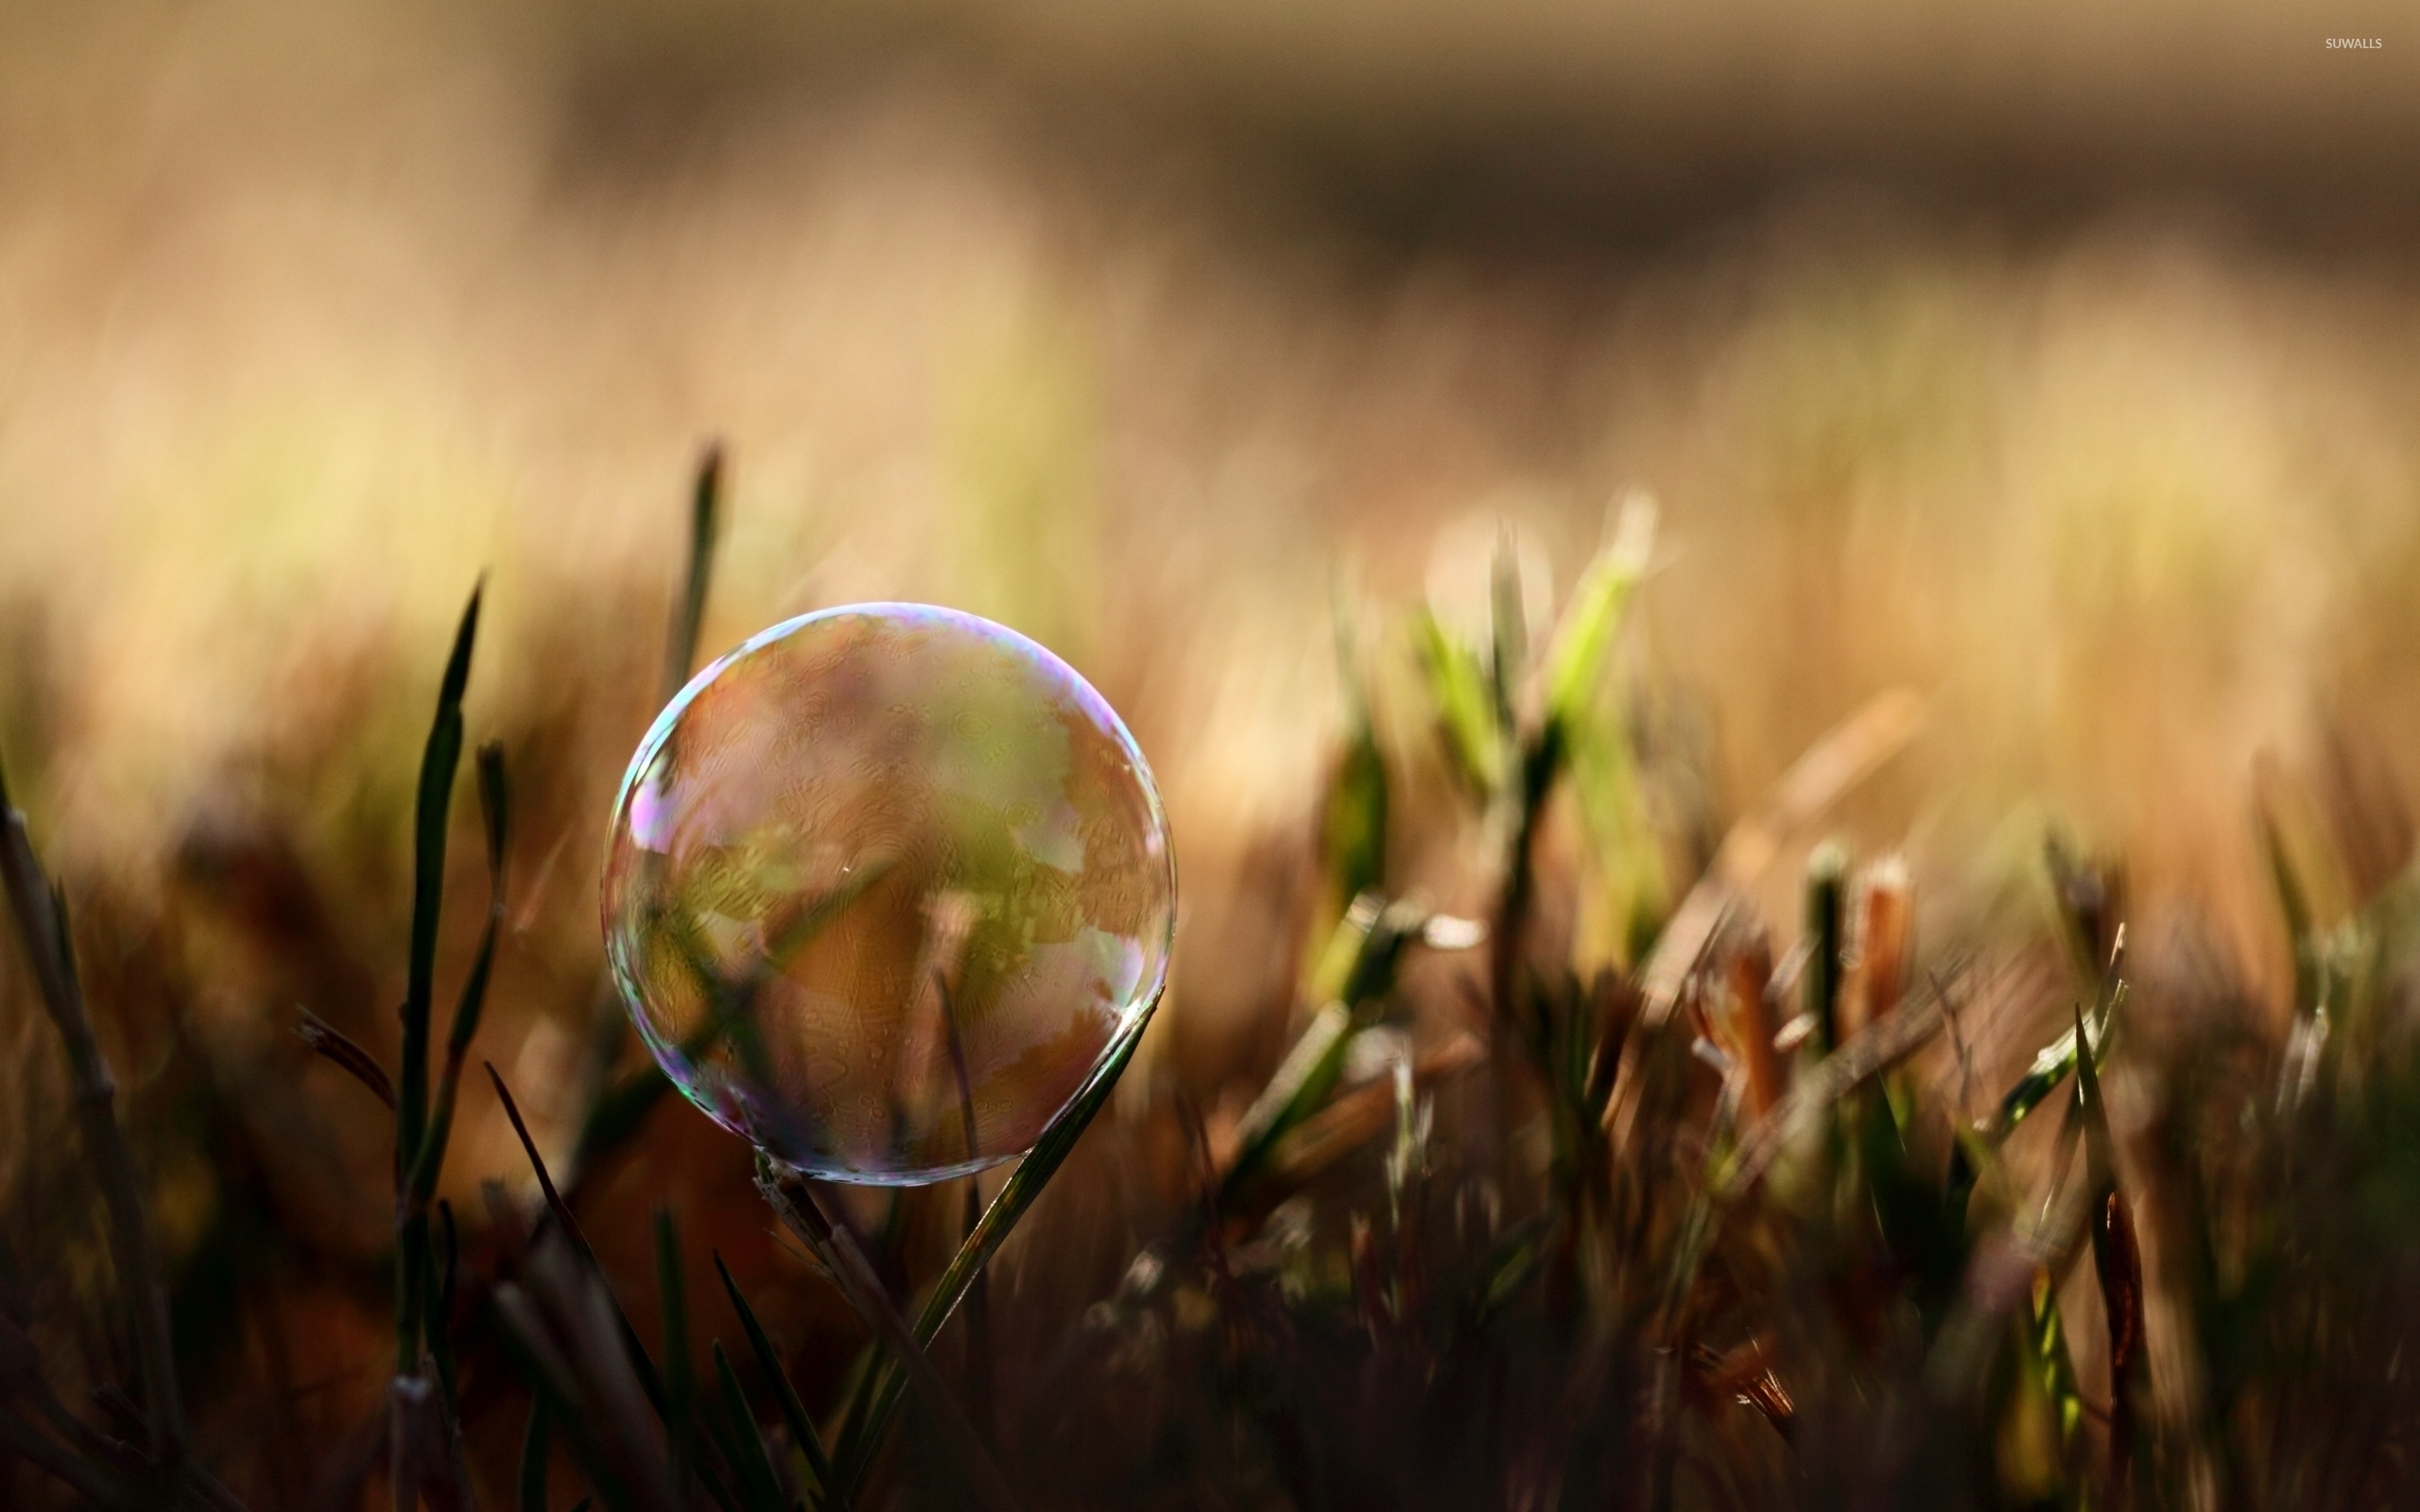 Soap Bubble On The Grass Wallpaper Photography Wallpapers